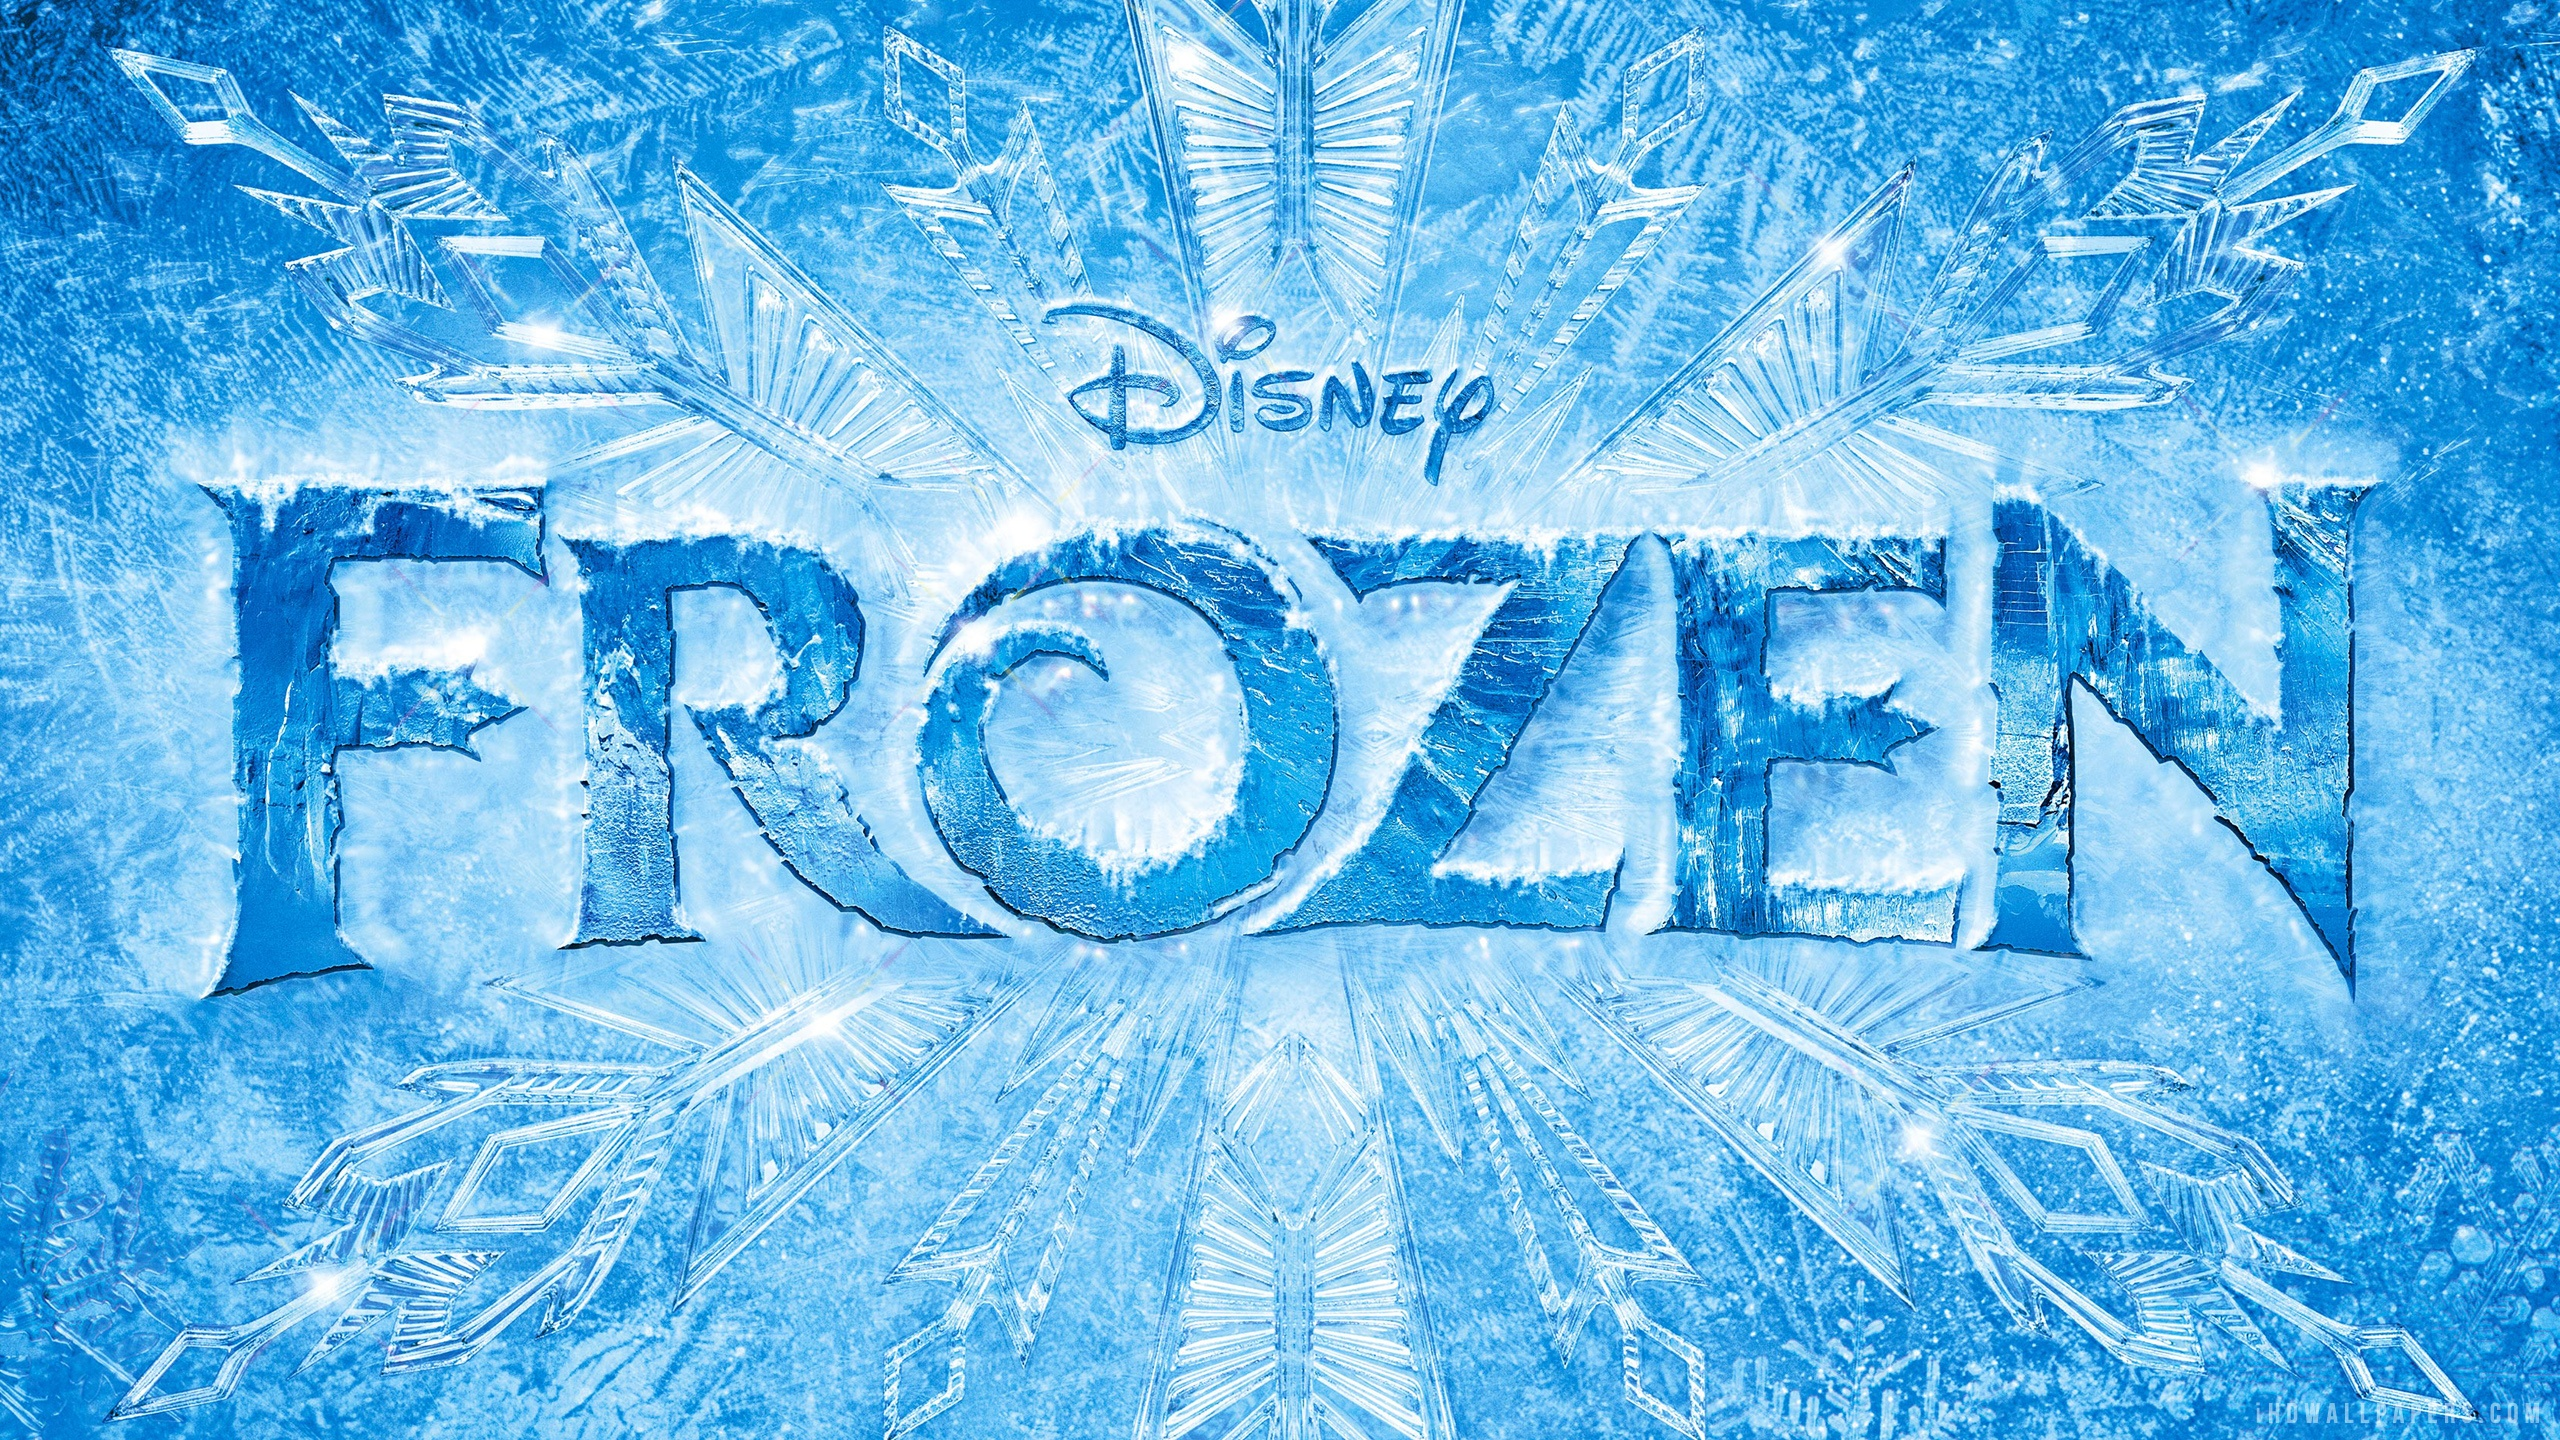 ... x 1440. Tags: Disney,Frozen ...